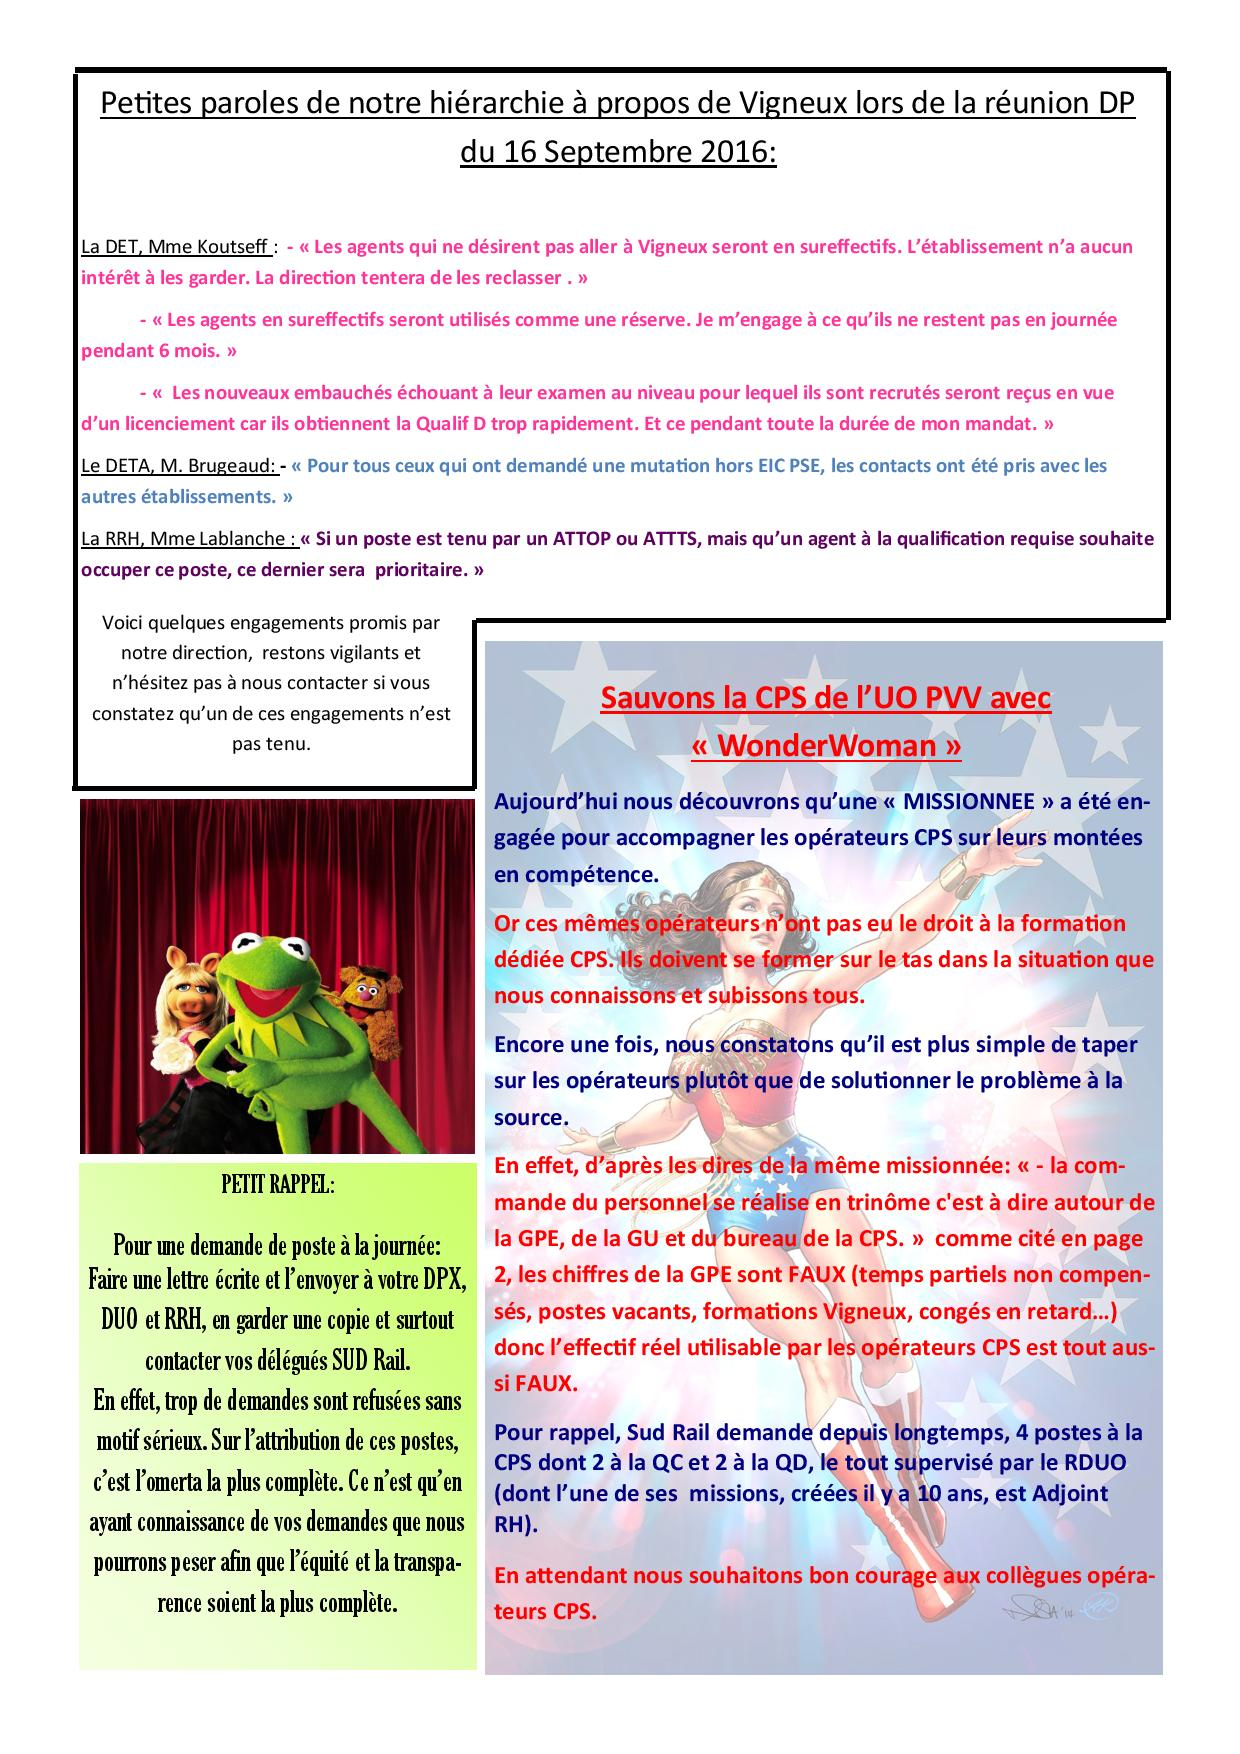 crdp-eic-11-2016-page-006